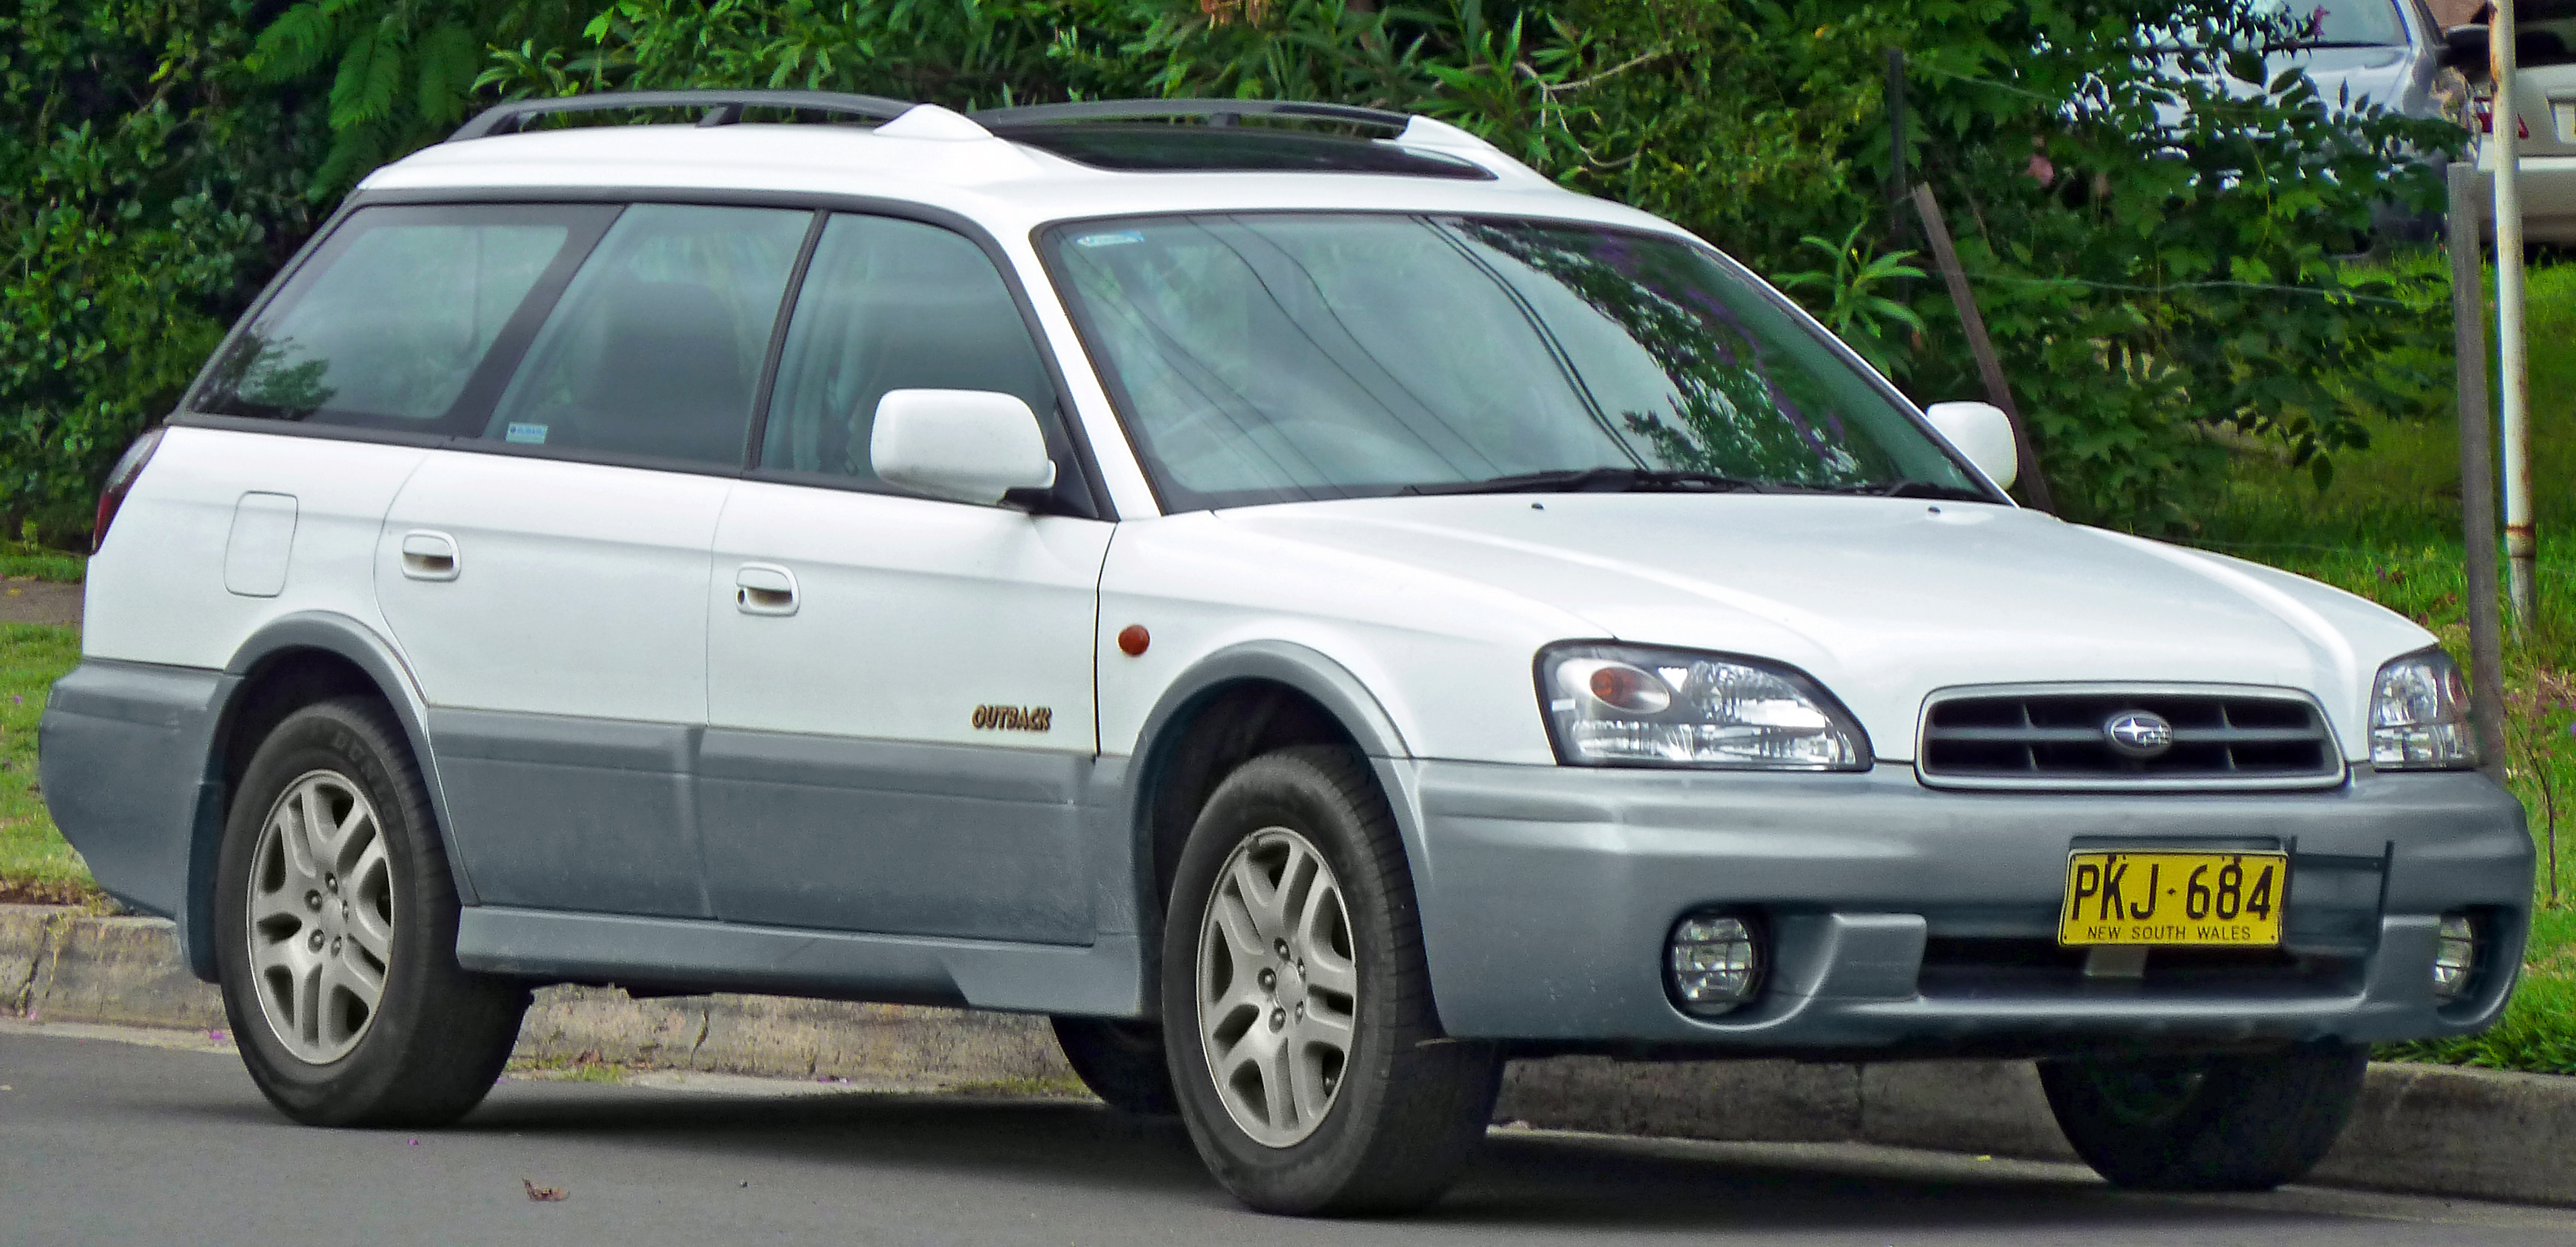 2001 Subaru Outback Custom >> 2001 Subaru Outback - Information and photos - ZombieDrive